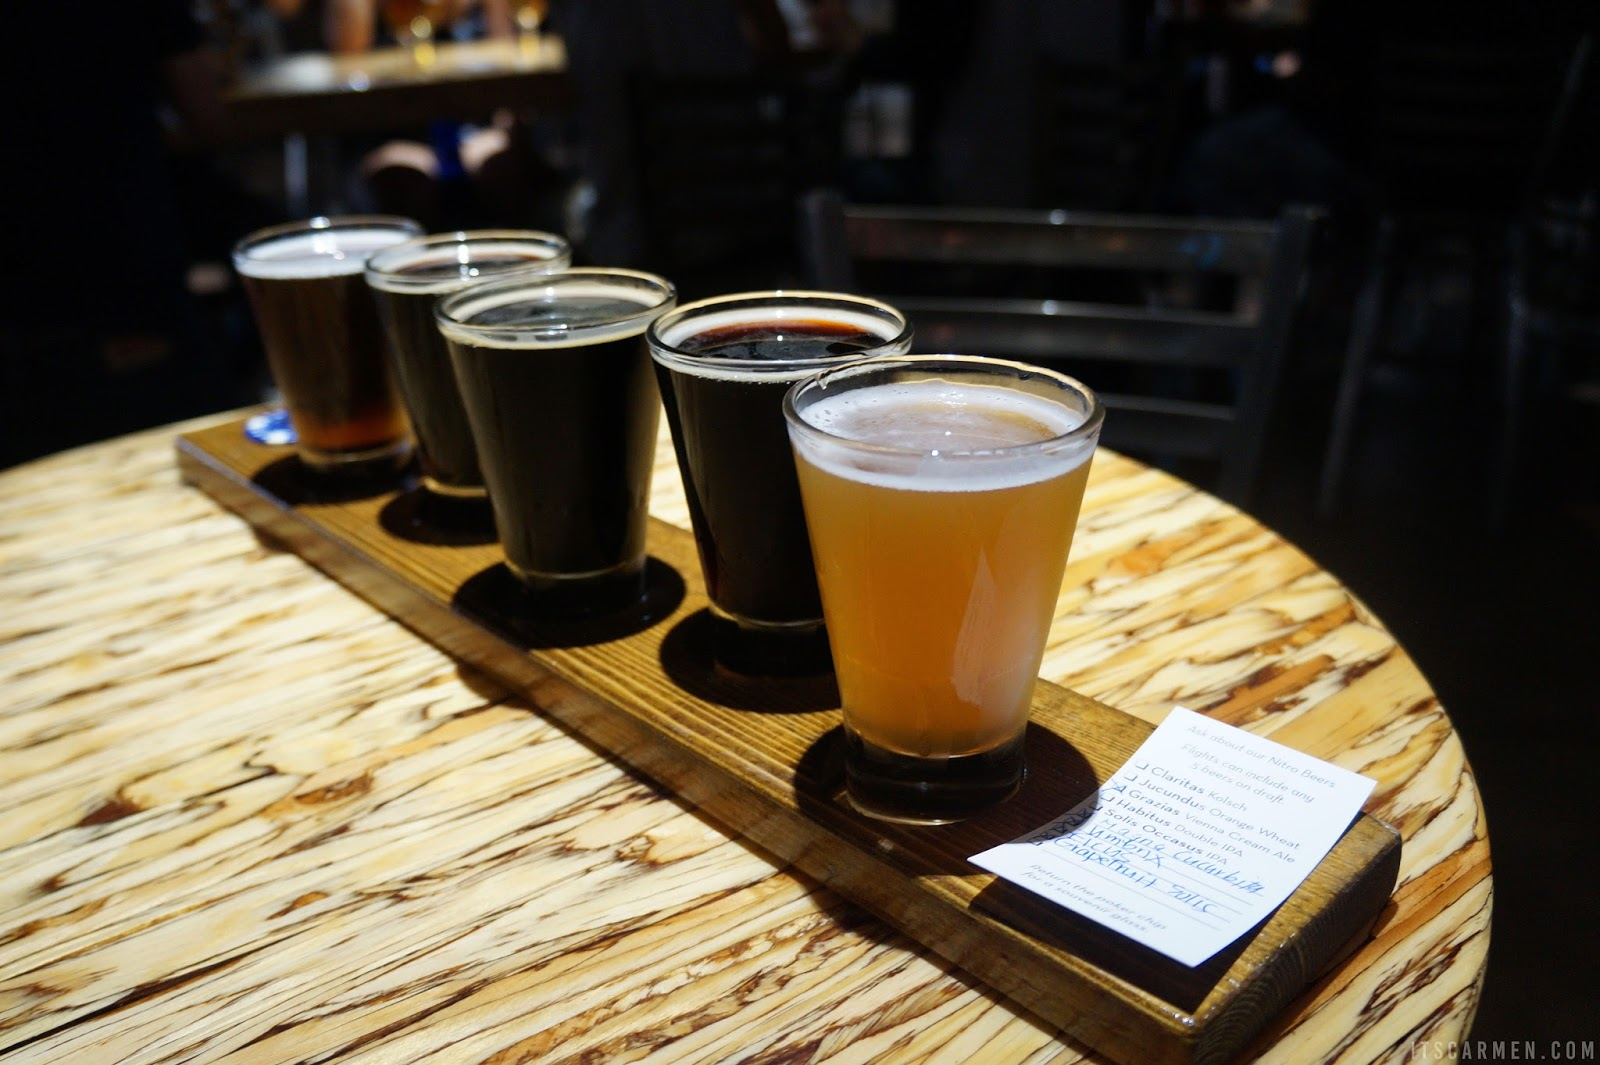 Mike Hess, Mike Hess Brewing, San Diego, North Park, SDBeer, beer, craft beer, brewery review,